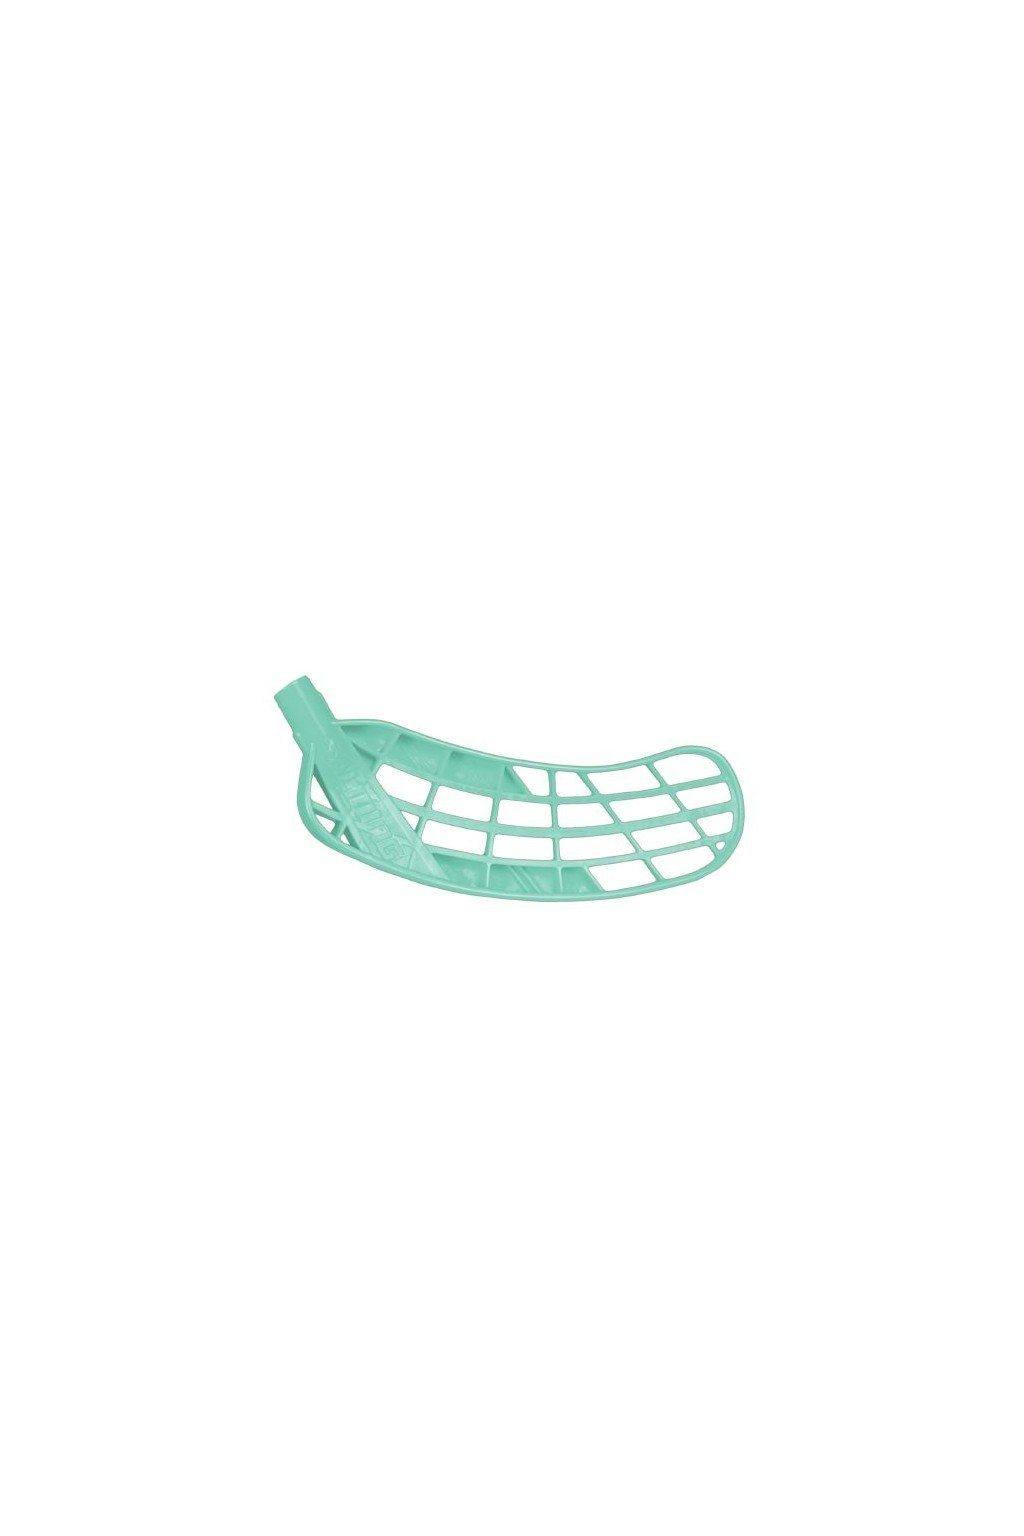 salming raven blade touch plus mint green r